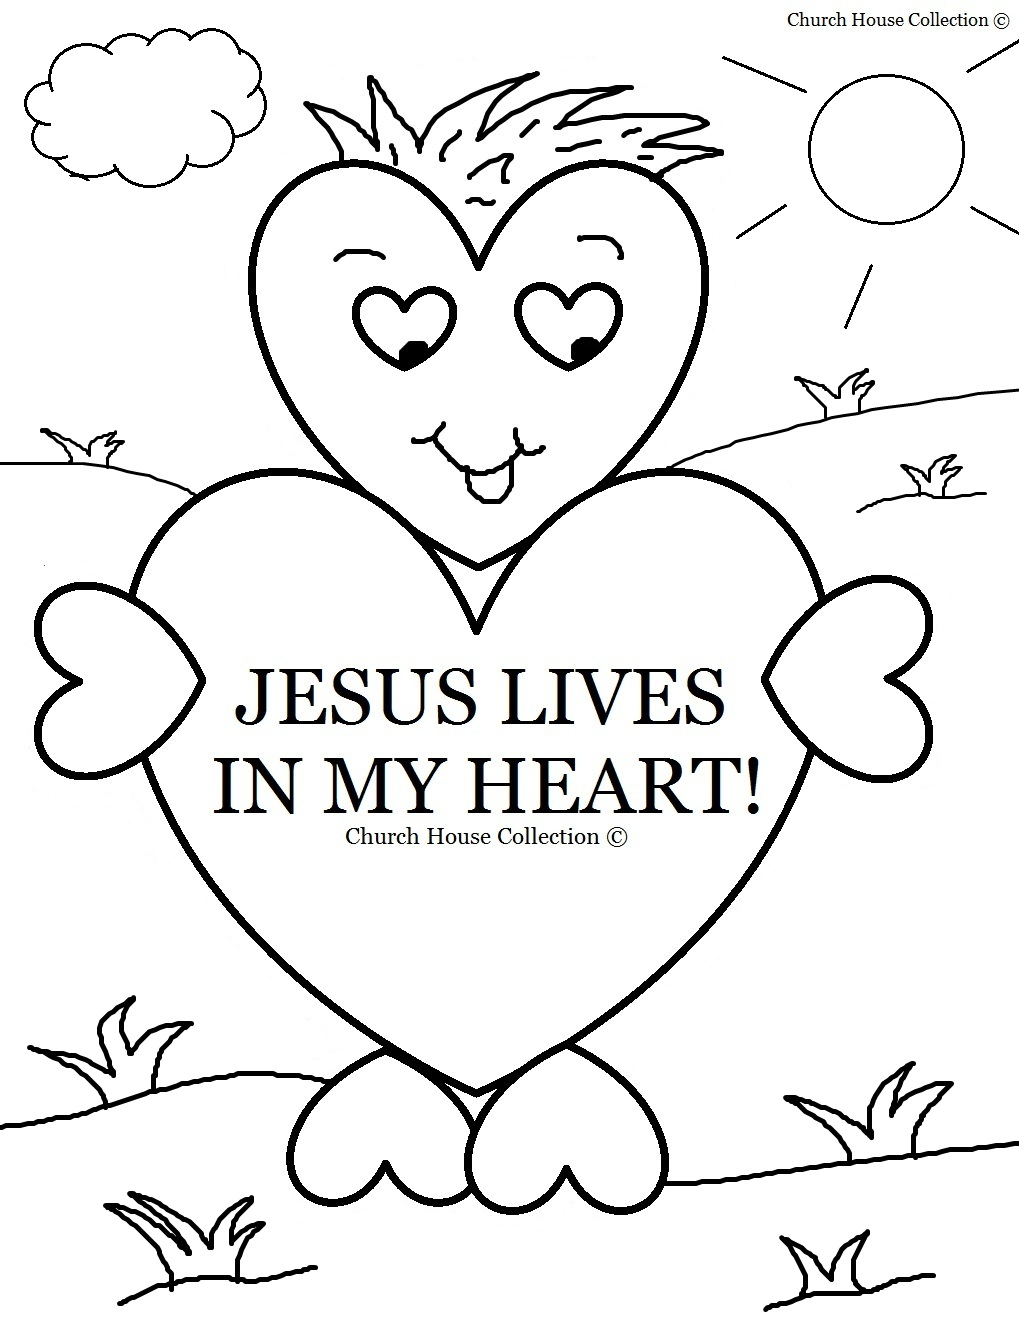 Church House Collection Blog: Jesus Lives In My Heart